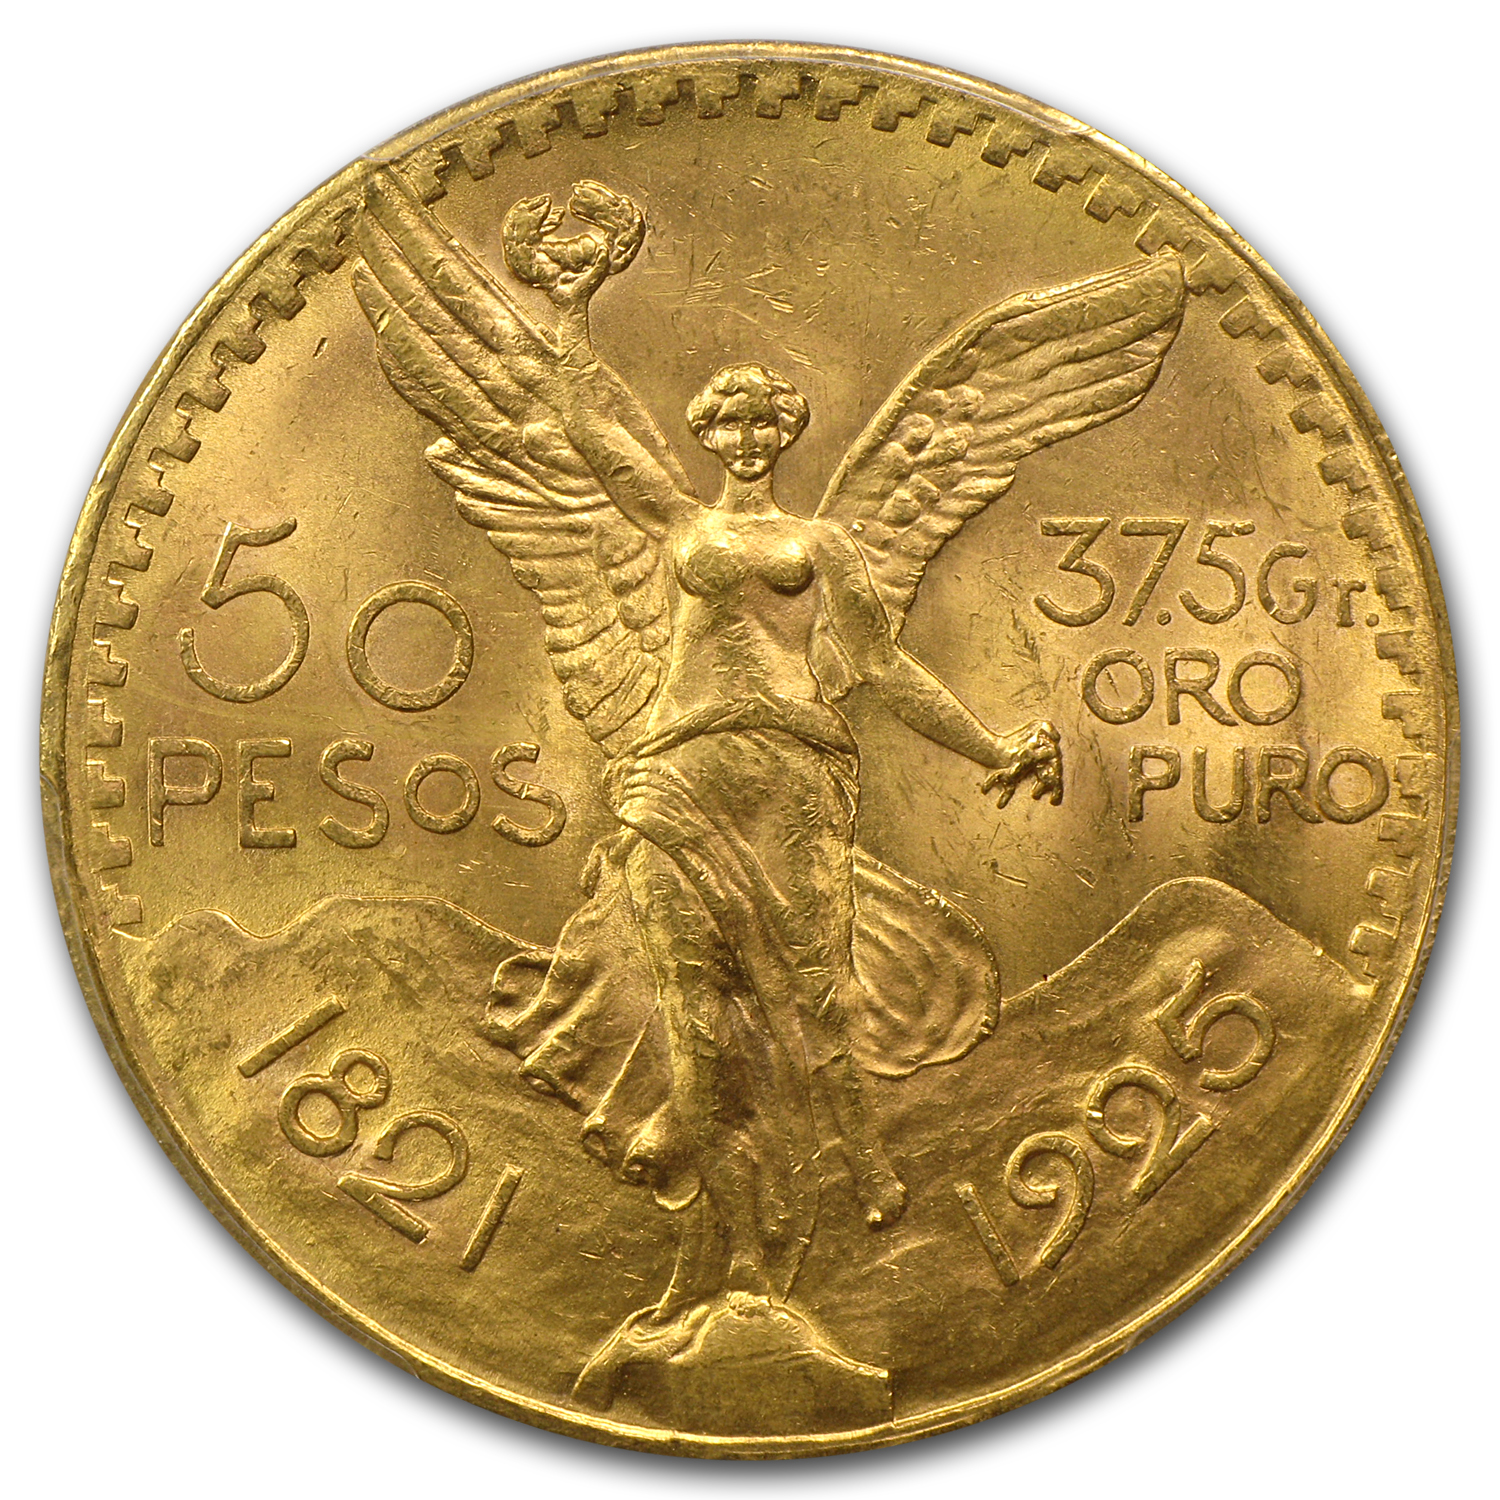 1925 Mexico Gold 50 Pesos MS-64 PCGS